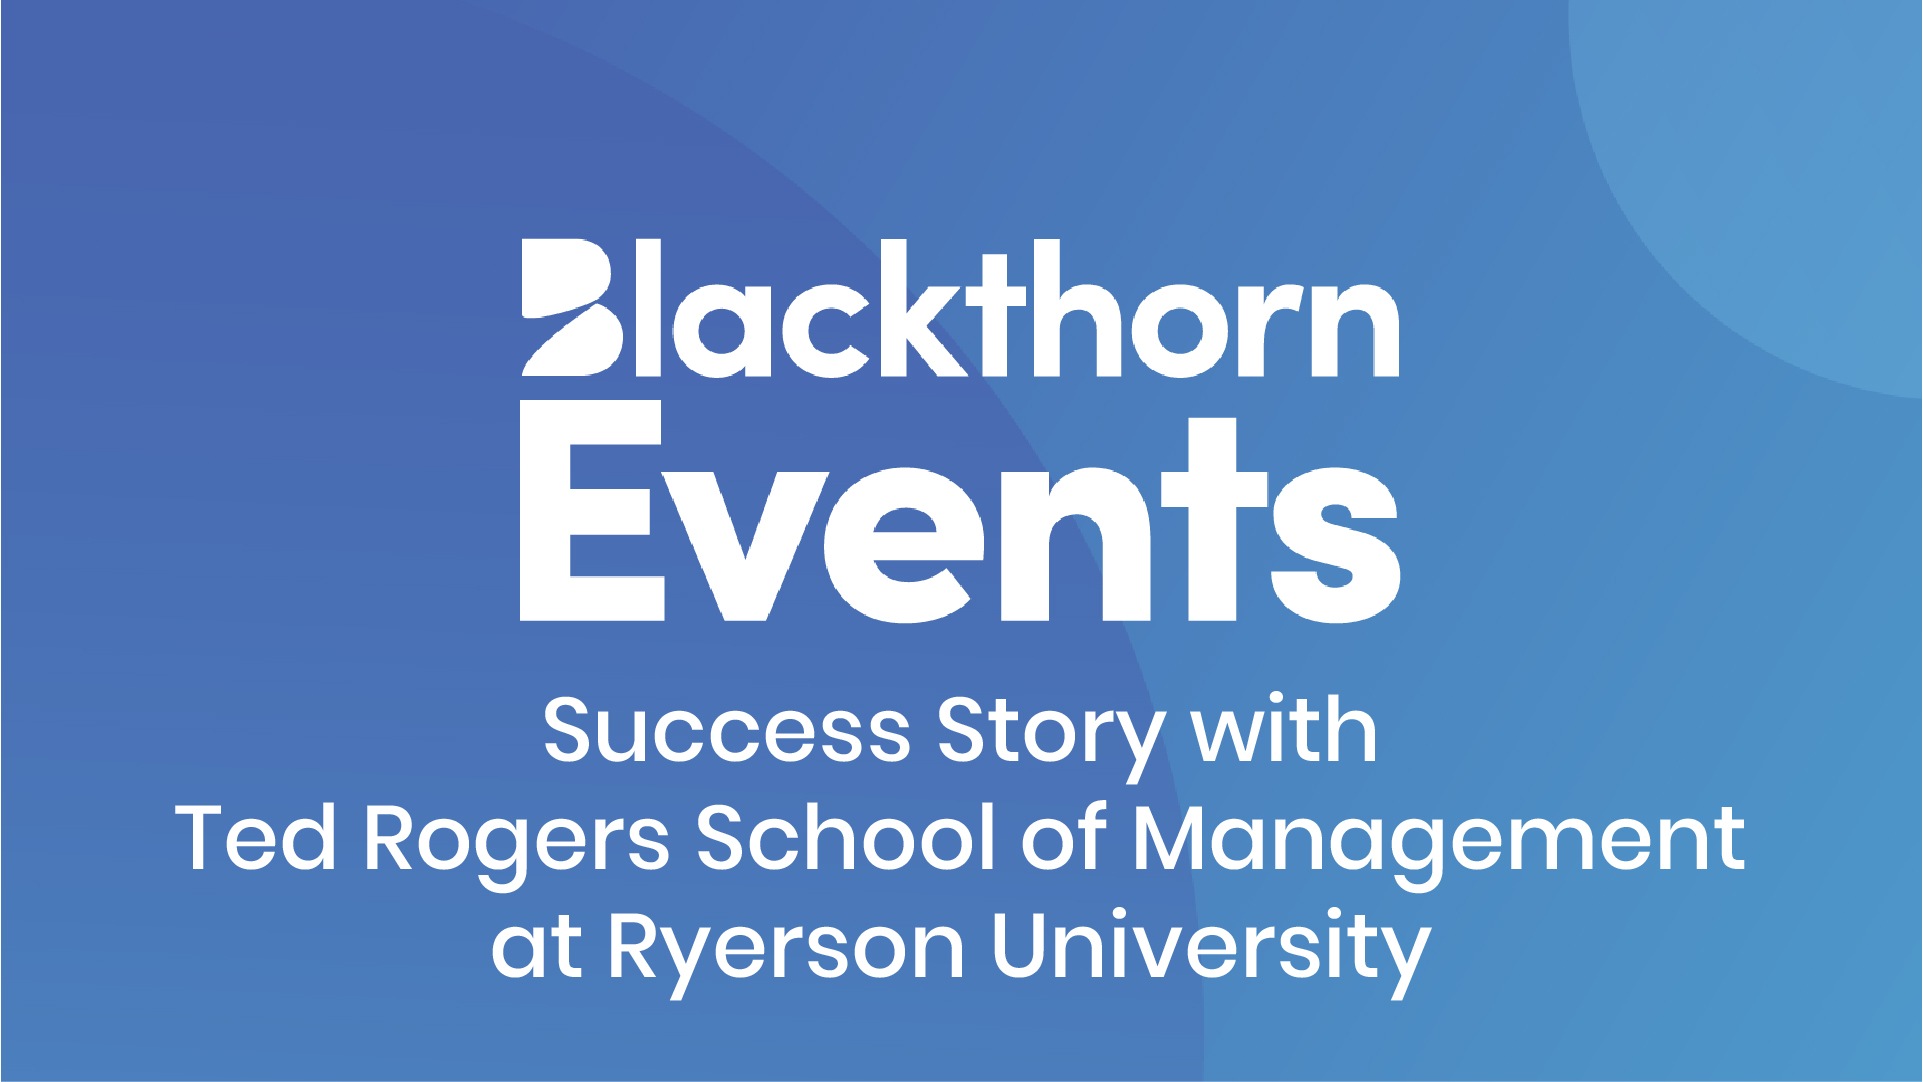 Ted Rogers School of Management sees increased student engagement with targeted virtual experiences thanks to event data in Salesforce